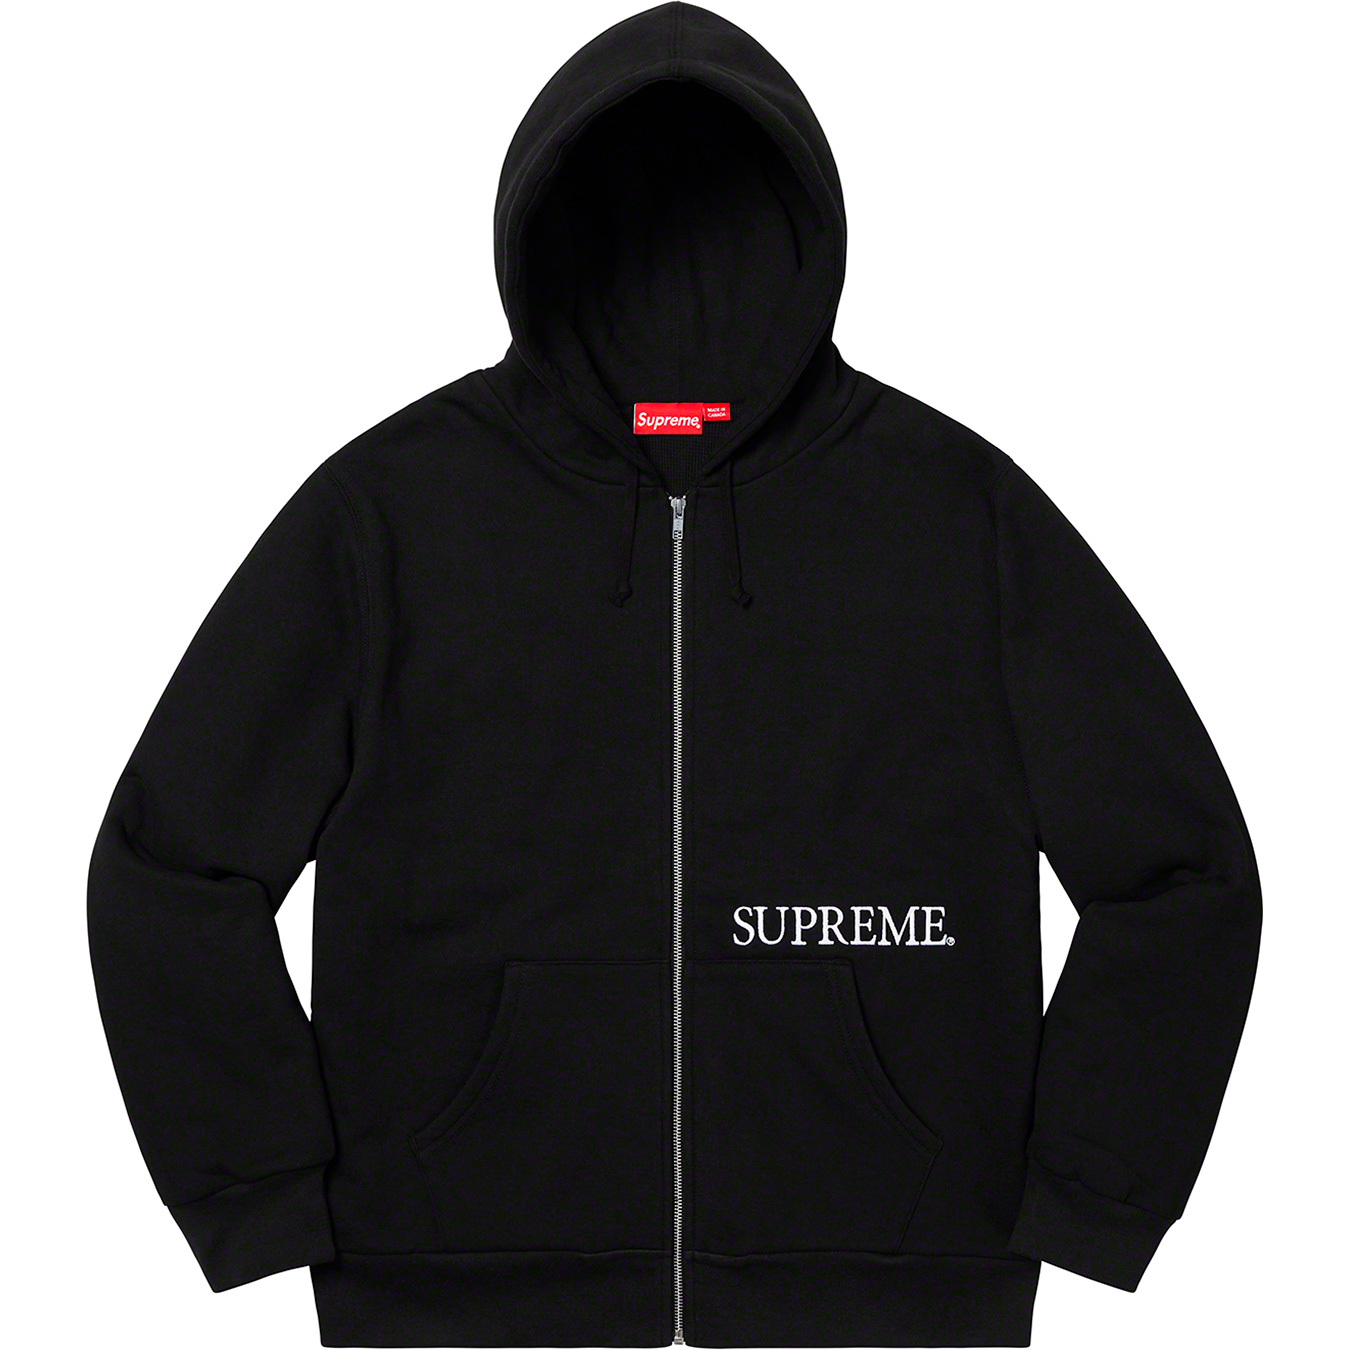 supreme-19aw-19fw-fall-winter-thermal-zip-up-hooded-sweatshirt